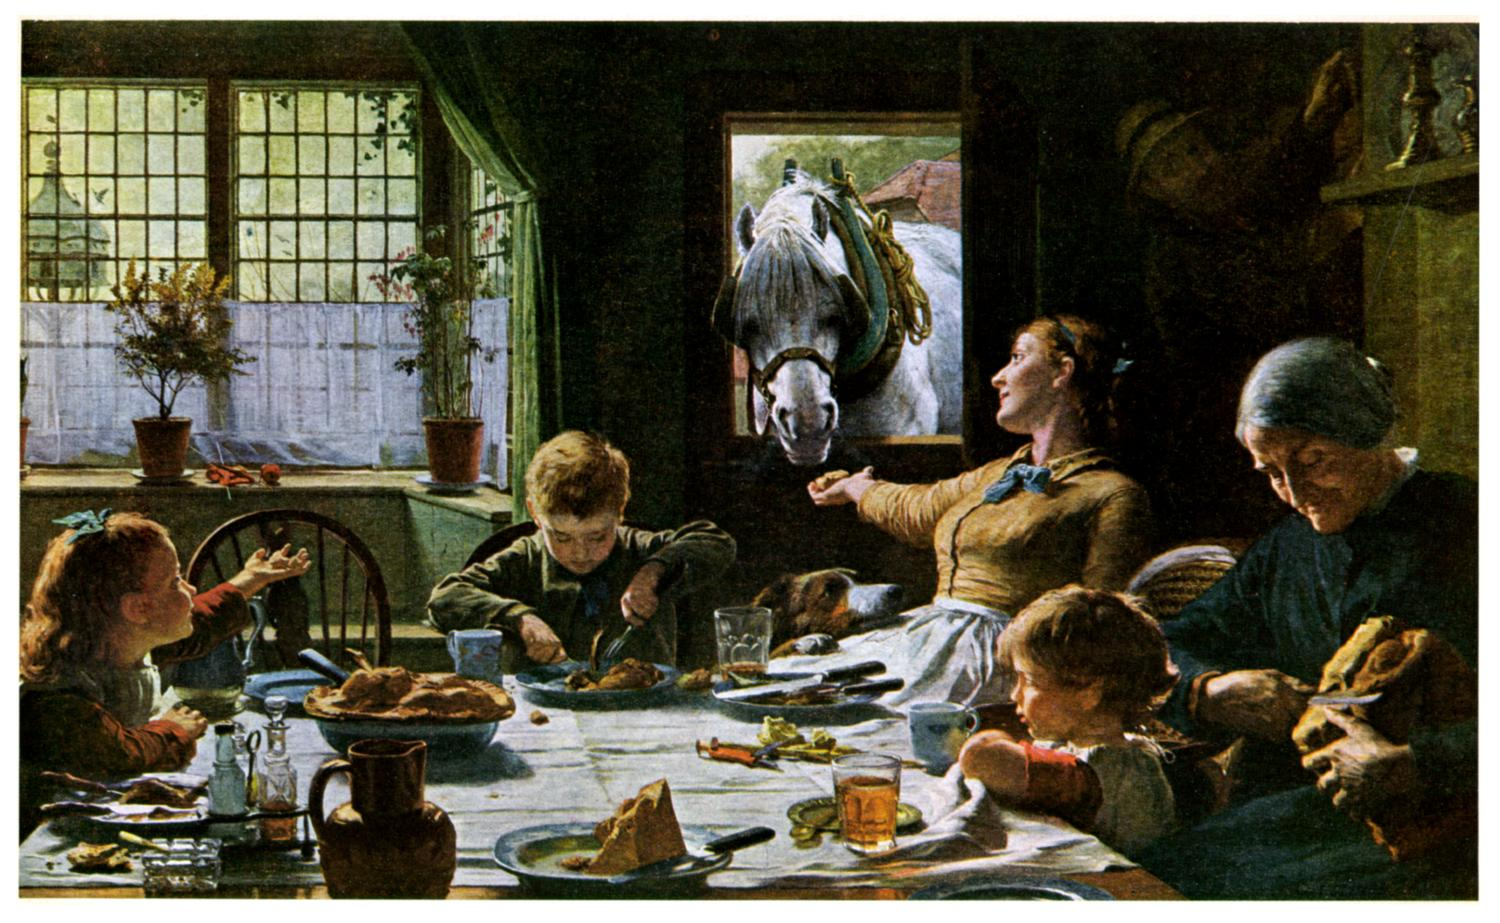 http://www.readwritethink.org/lesson_images/lesson116/dinner-family.jpg